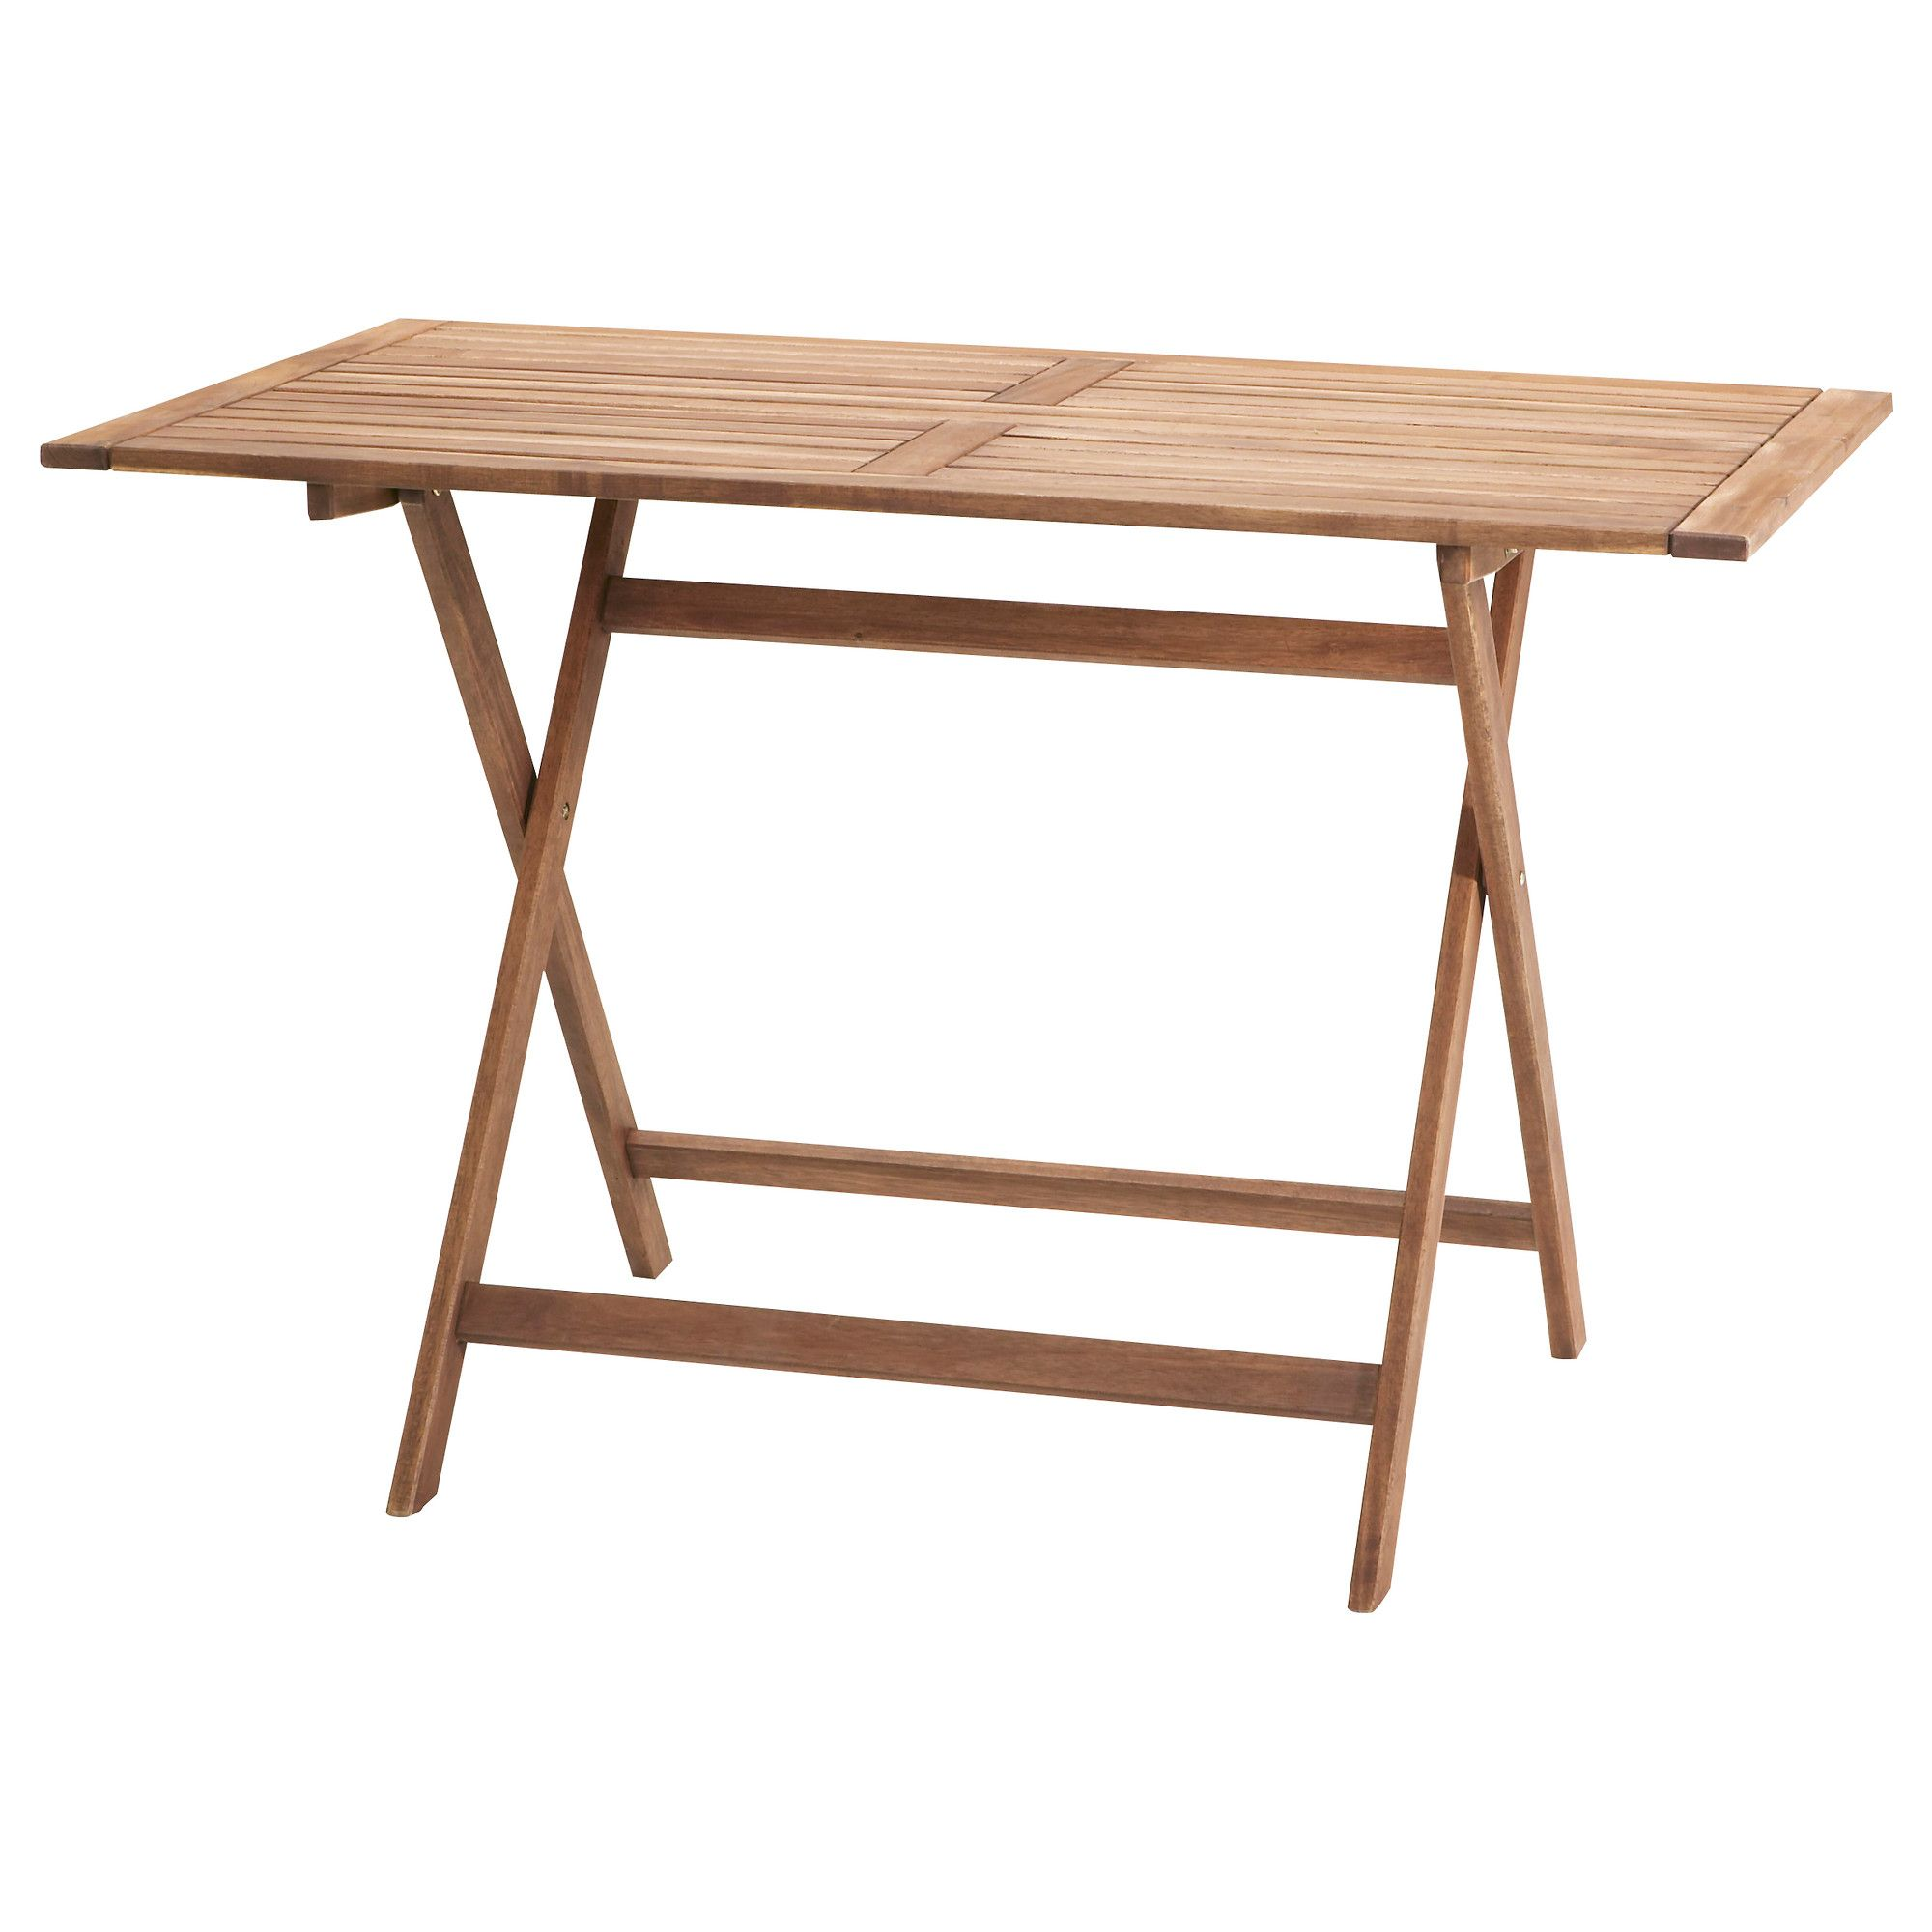 BollÖ Folding Table Ikea 49 99 An Alternative To Schlepping Our Own Kitchen Island Events